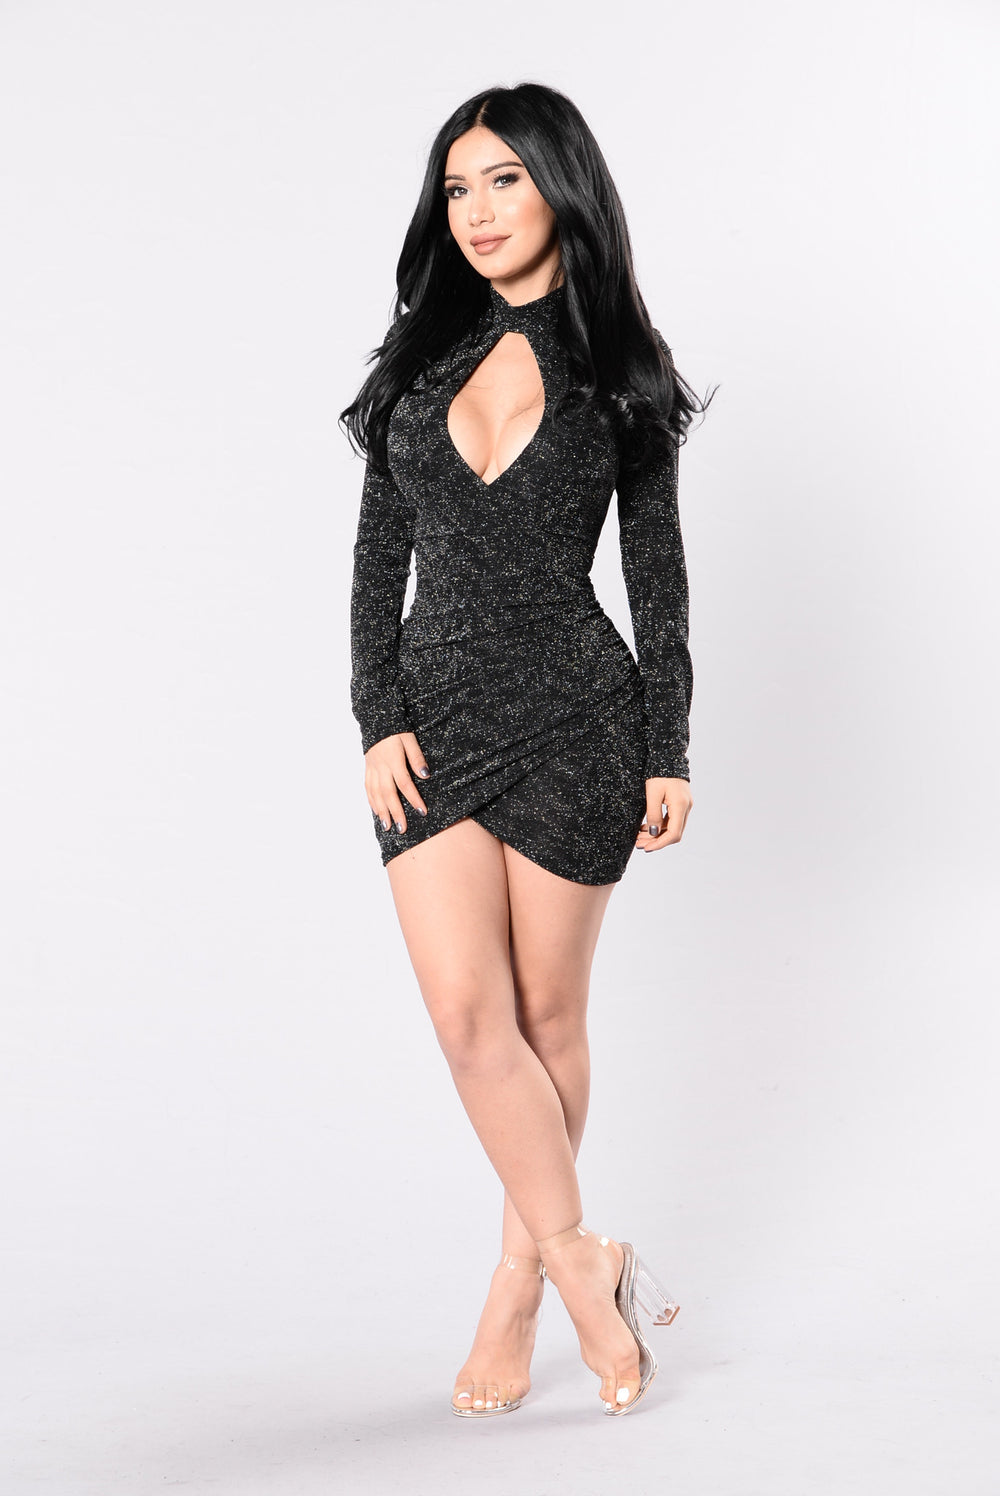 Dark Paradise Dress - Black/Silver